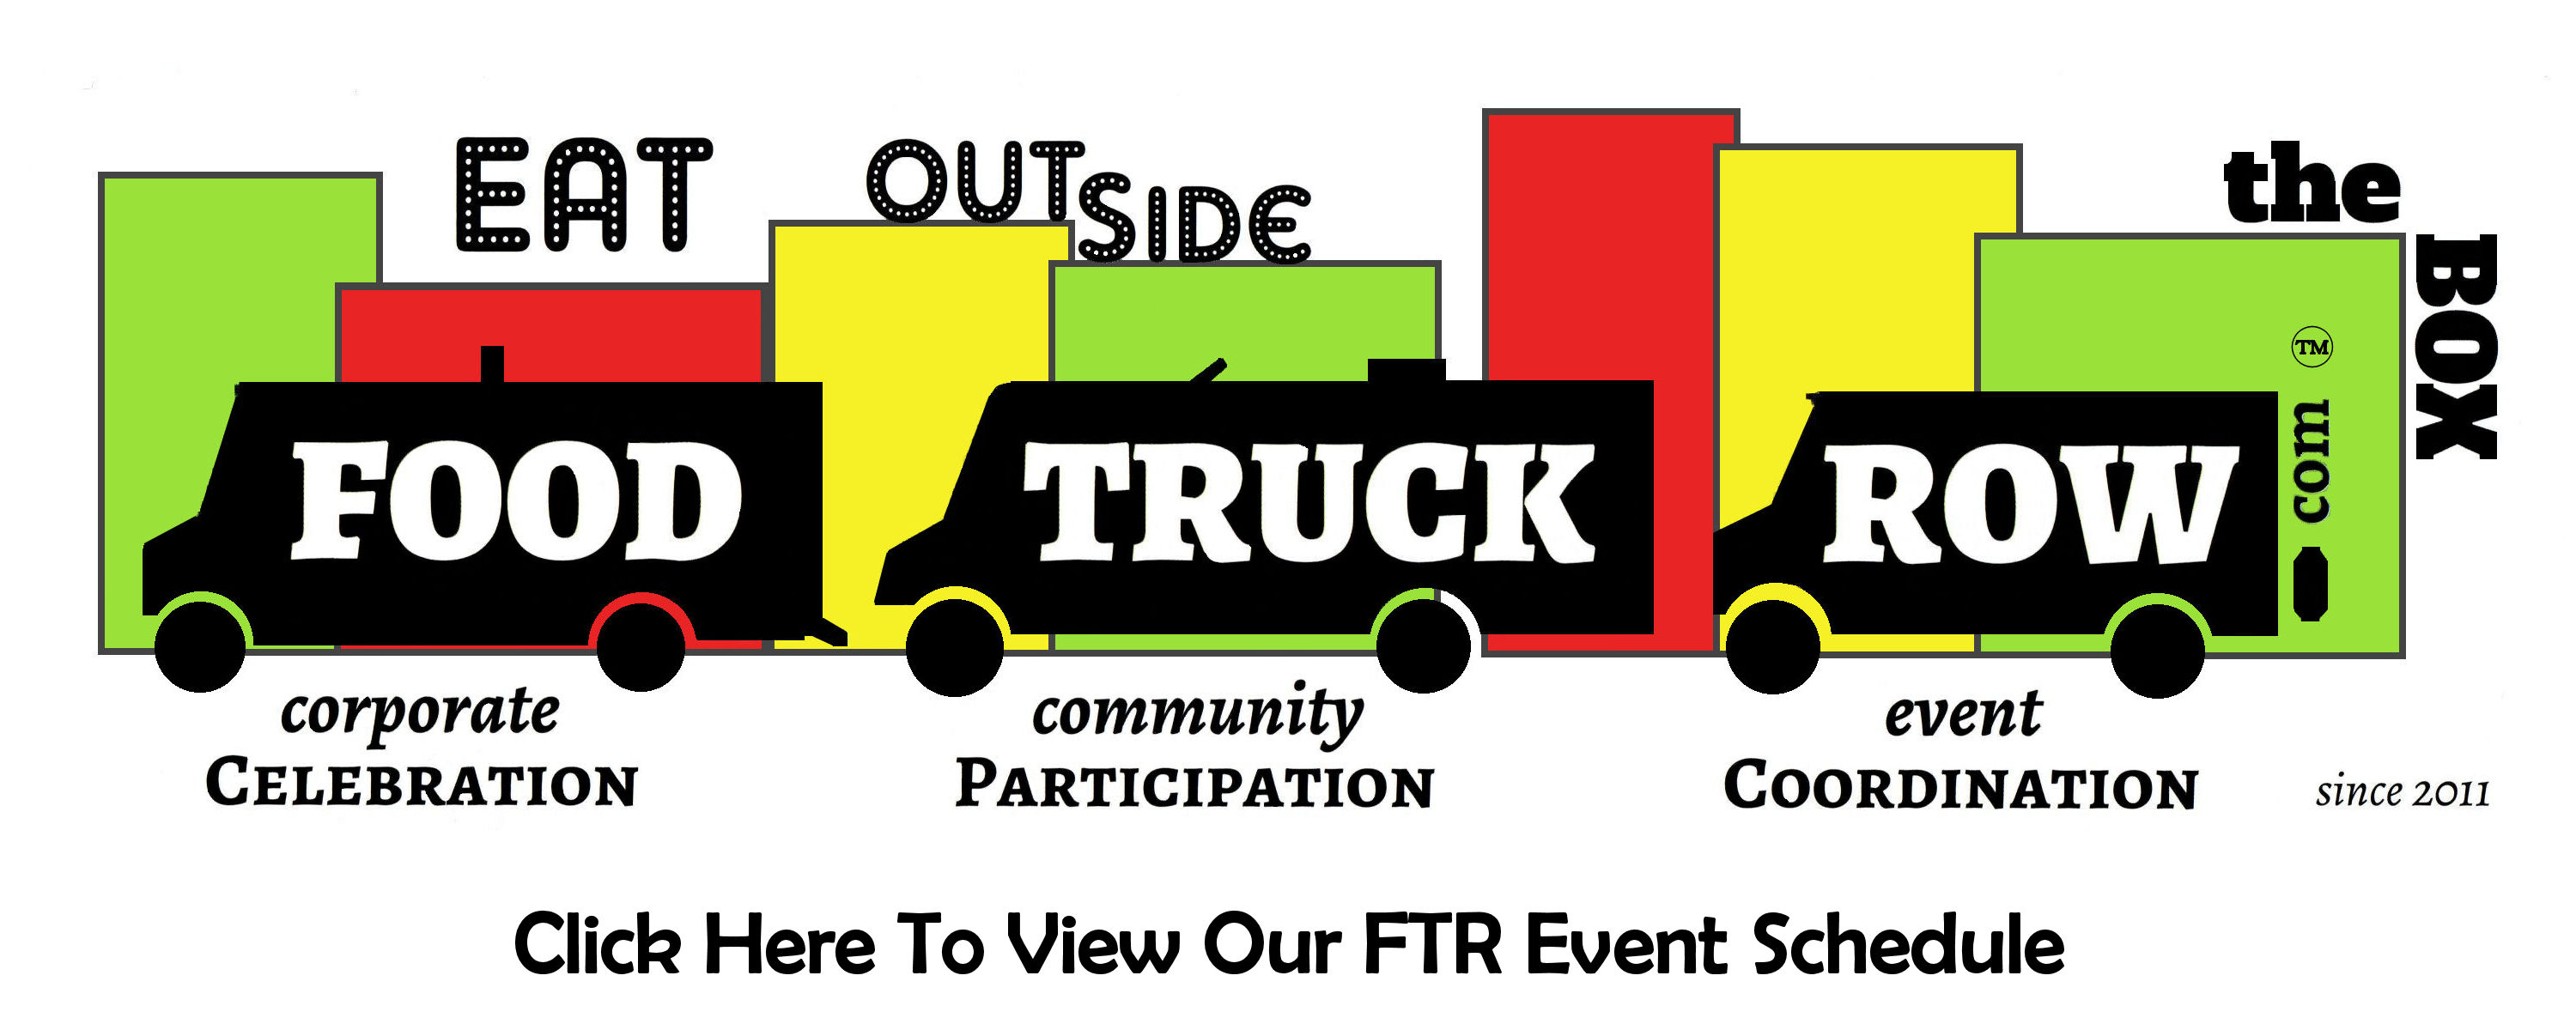 food truck row. click to view event schedule